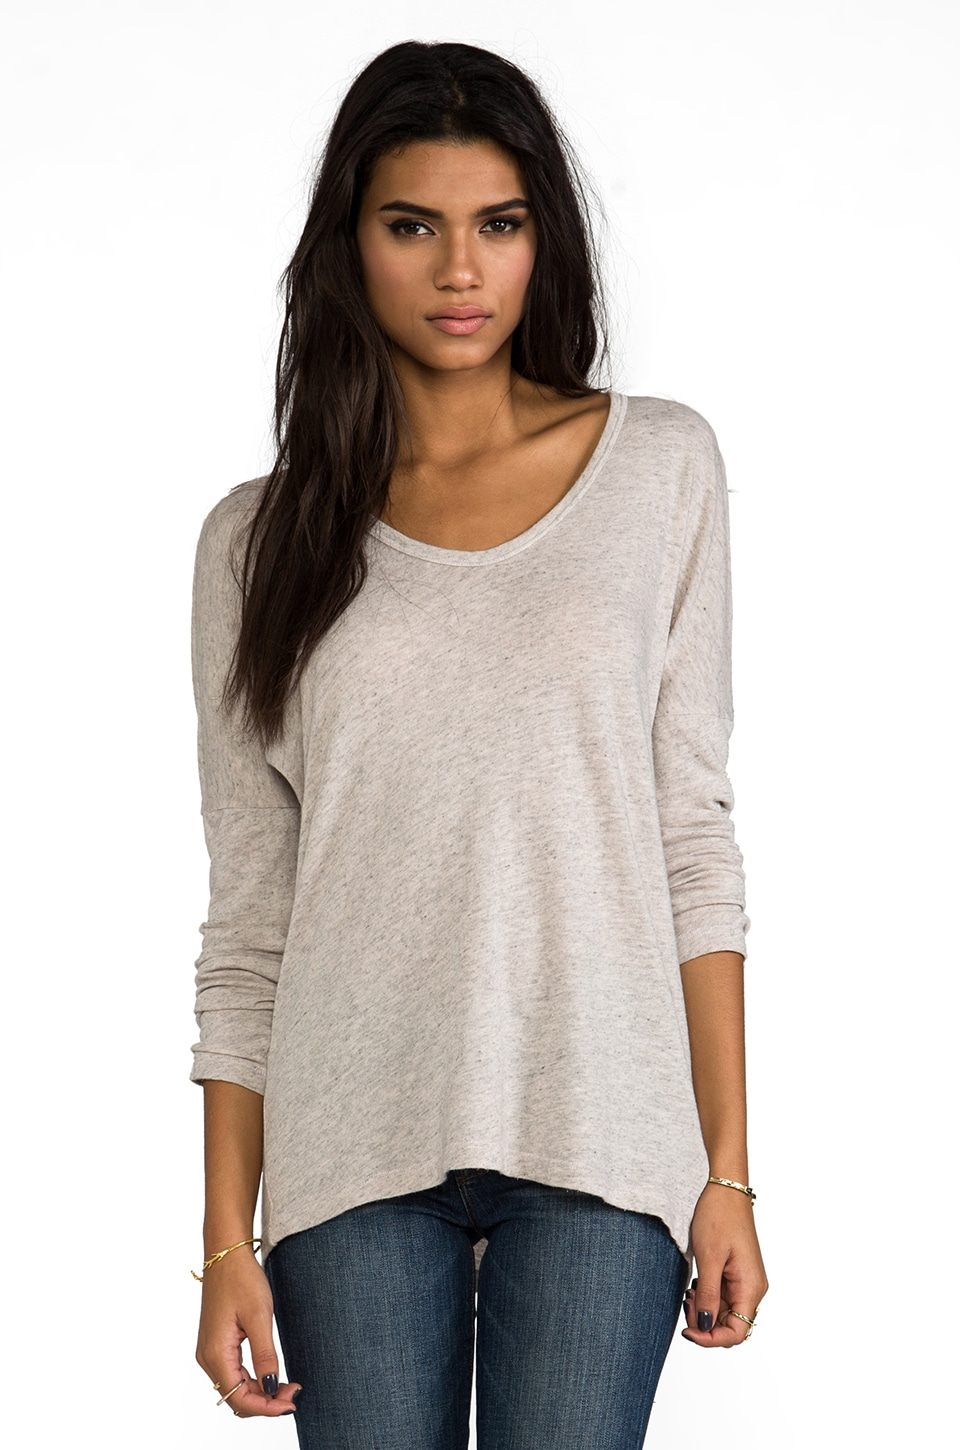 Velvet by Graham & Spencer Velvet Cozy Heather Tianna Top in Pebble